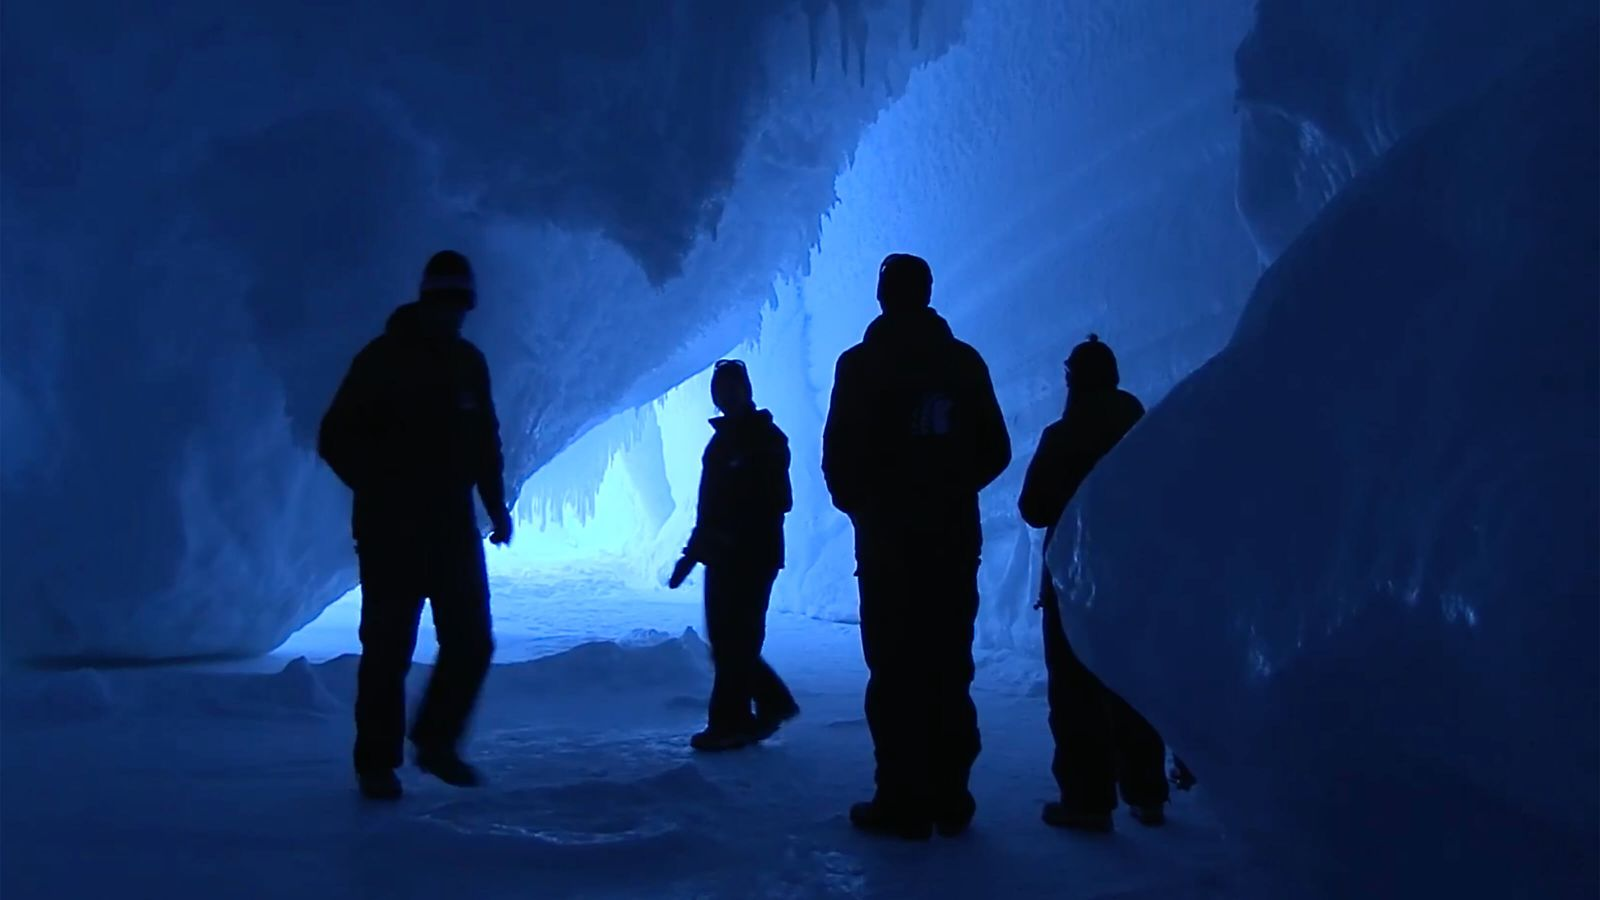 Human silhouettes explore an intensely blue ice cave.